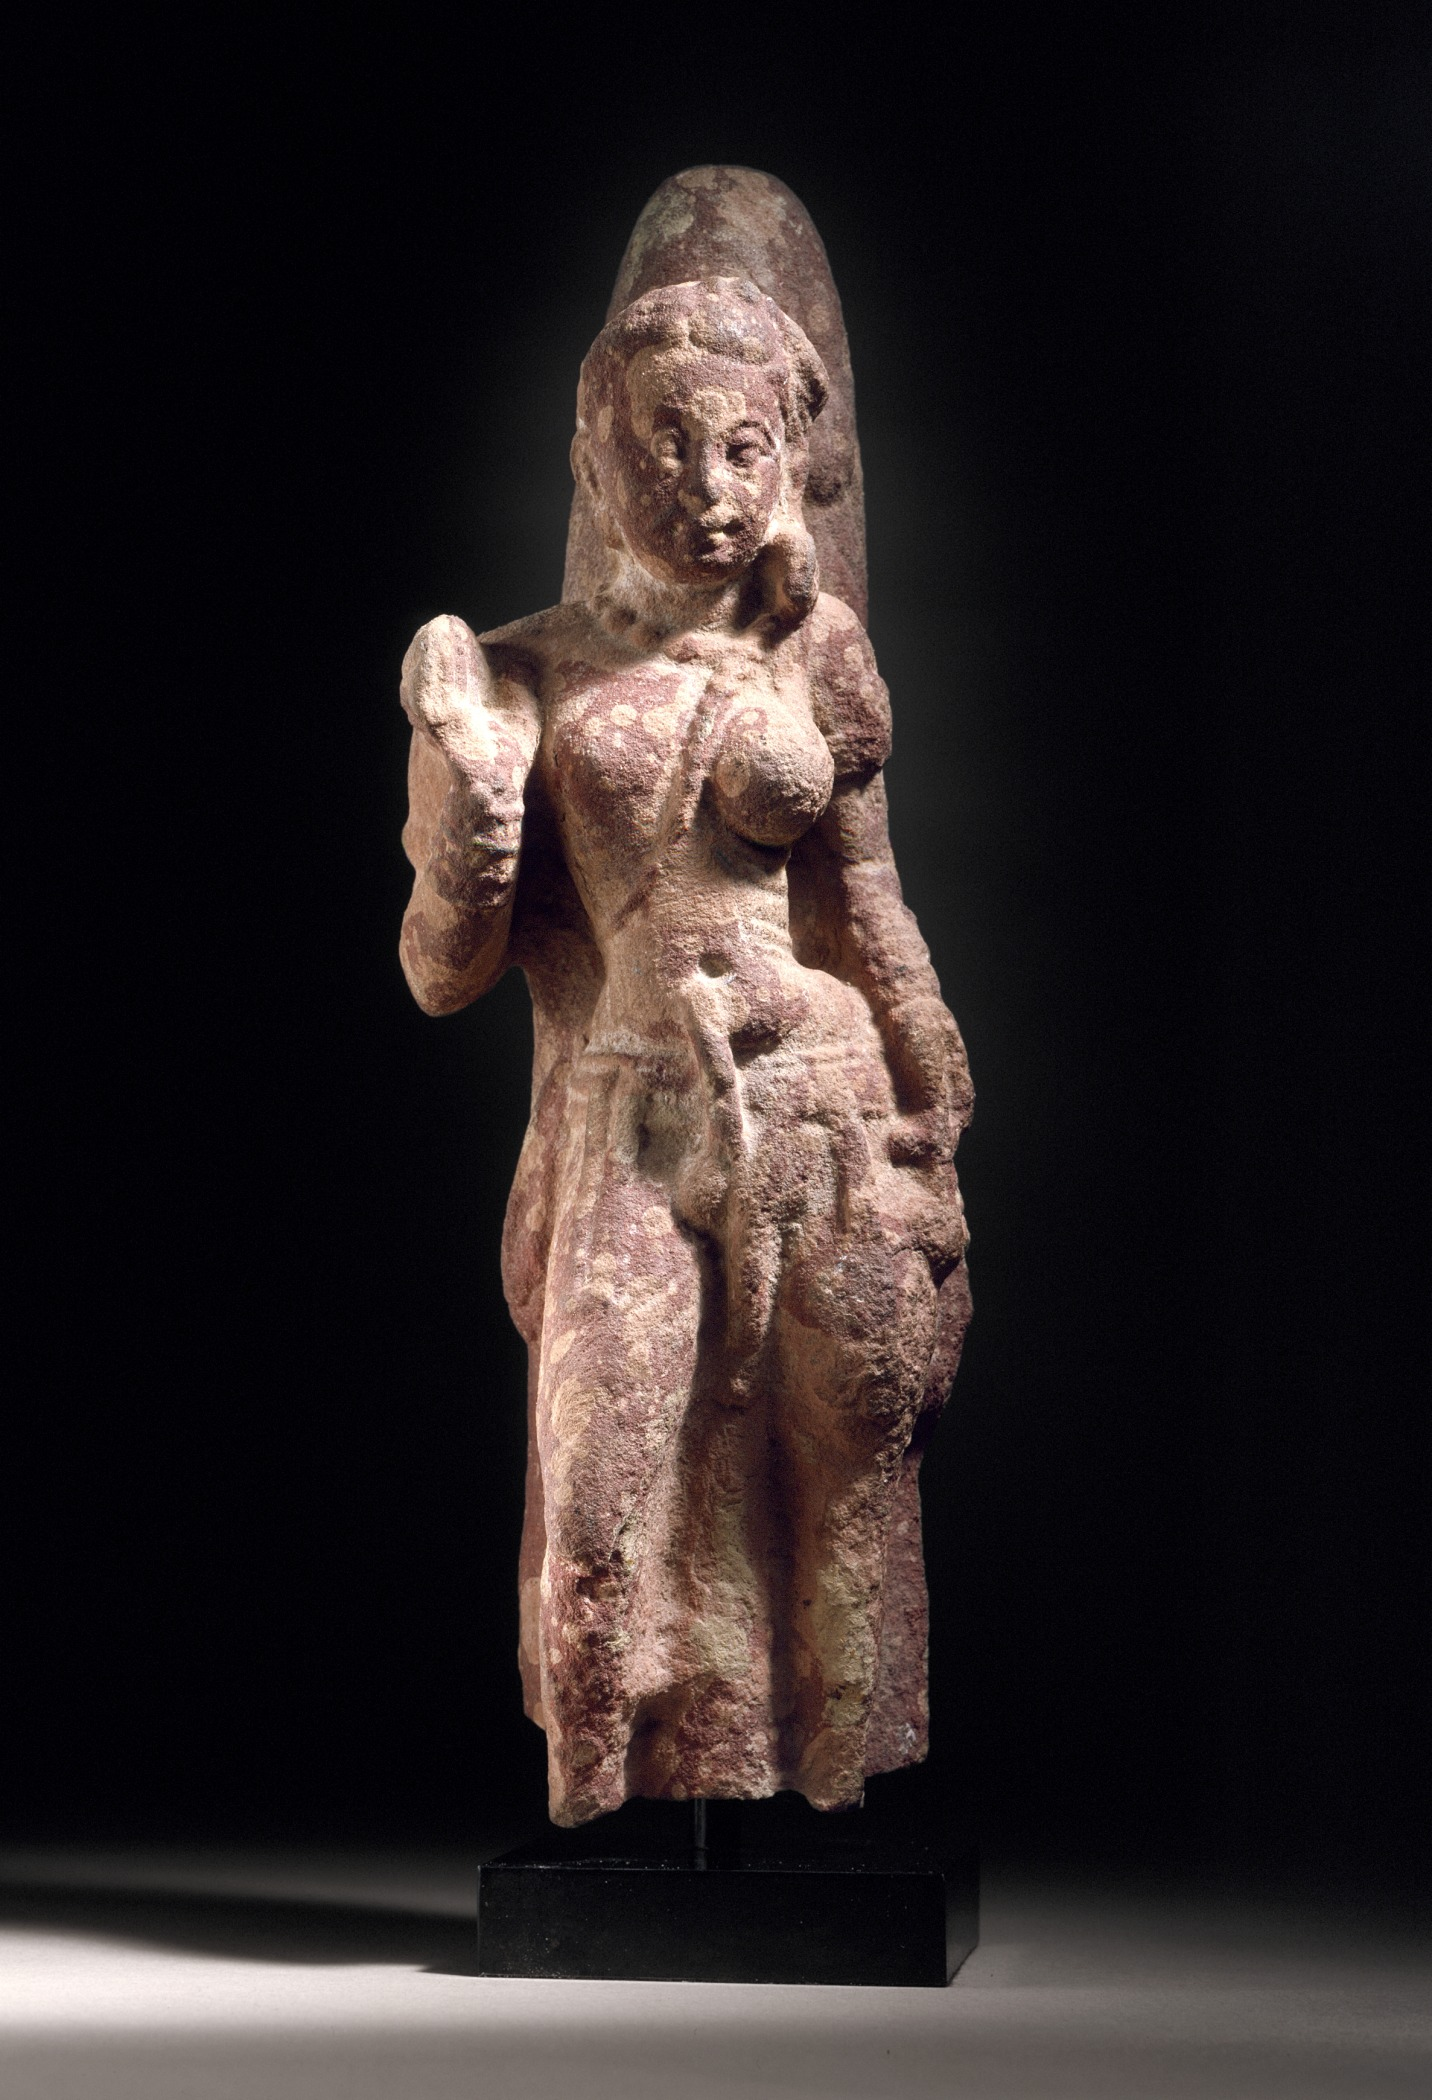 The Androgynous Form of Shiva and Parvati (Ardhanarishvara). India, Uttar Pradesh, Mathura, 2nd-3rd century sculpture. Mottled red sandstone. Los Angeles County Museum of Art.